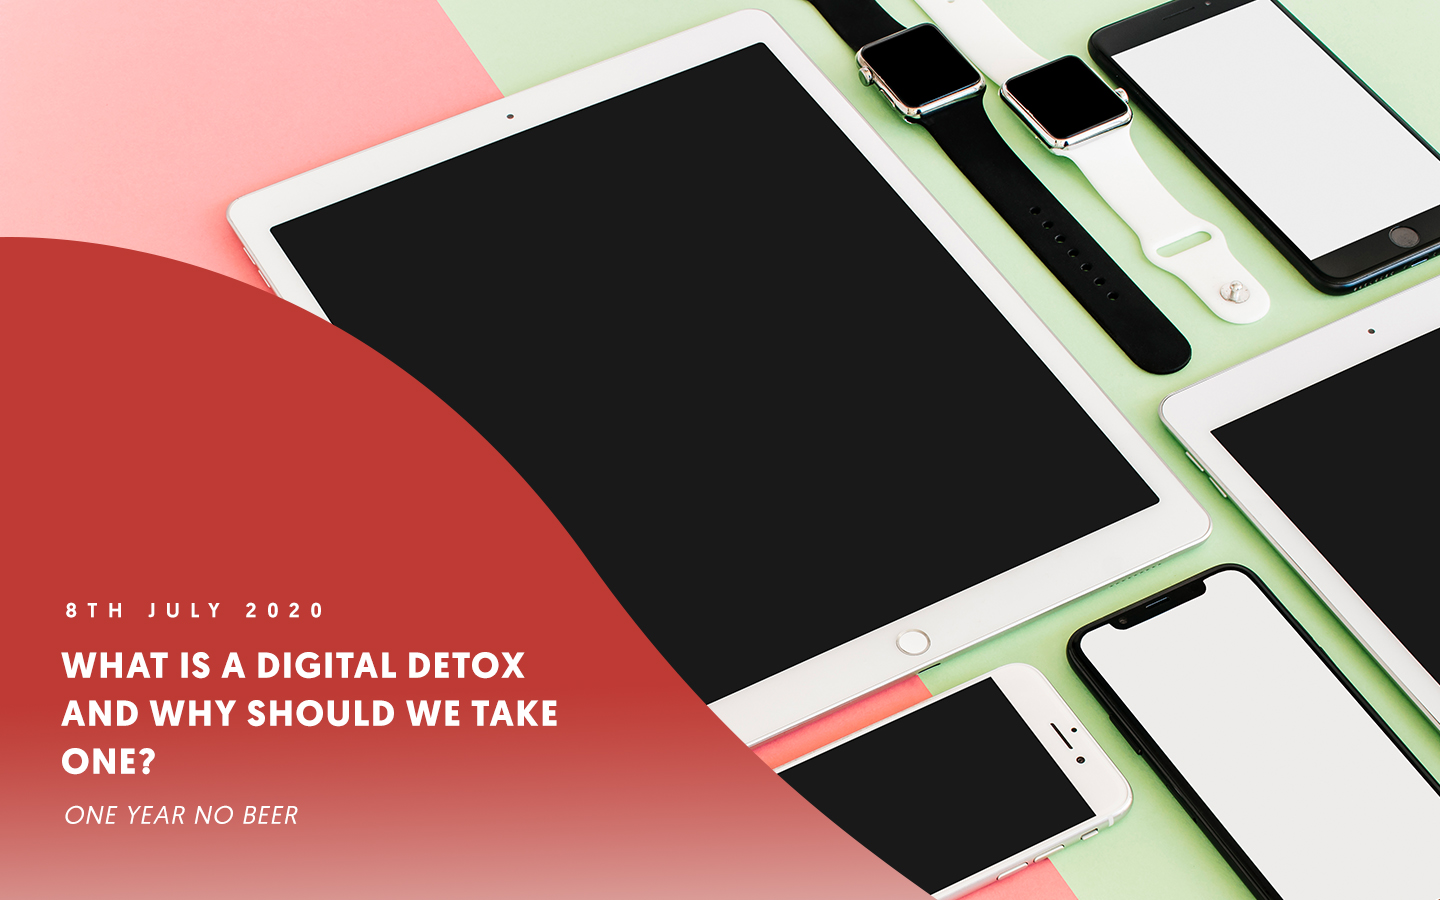 What is a digital detox and why should we take one?